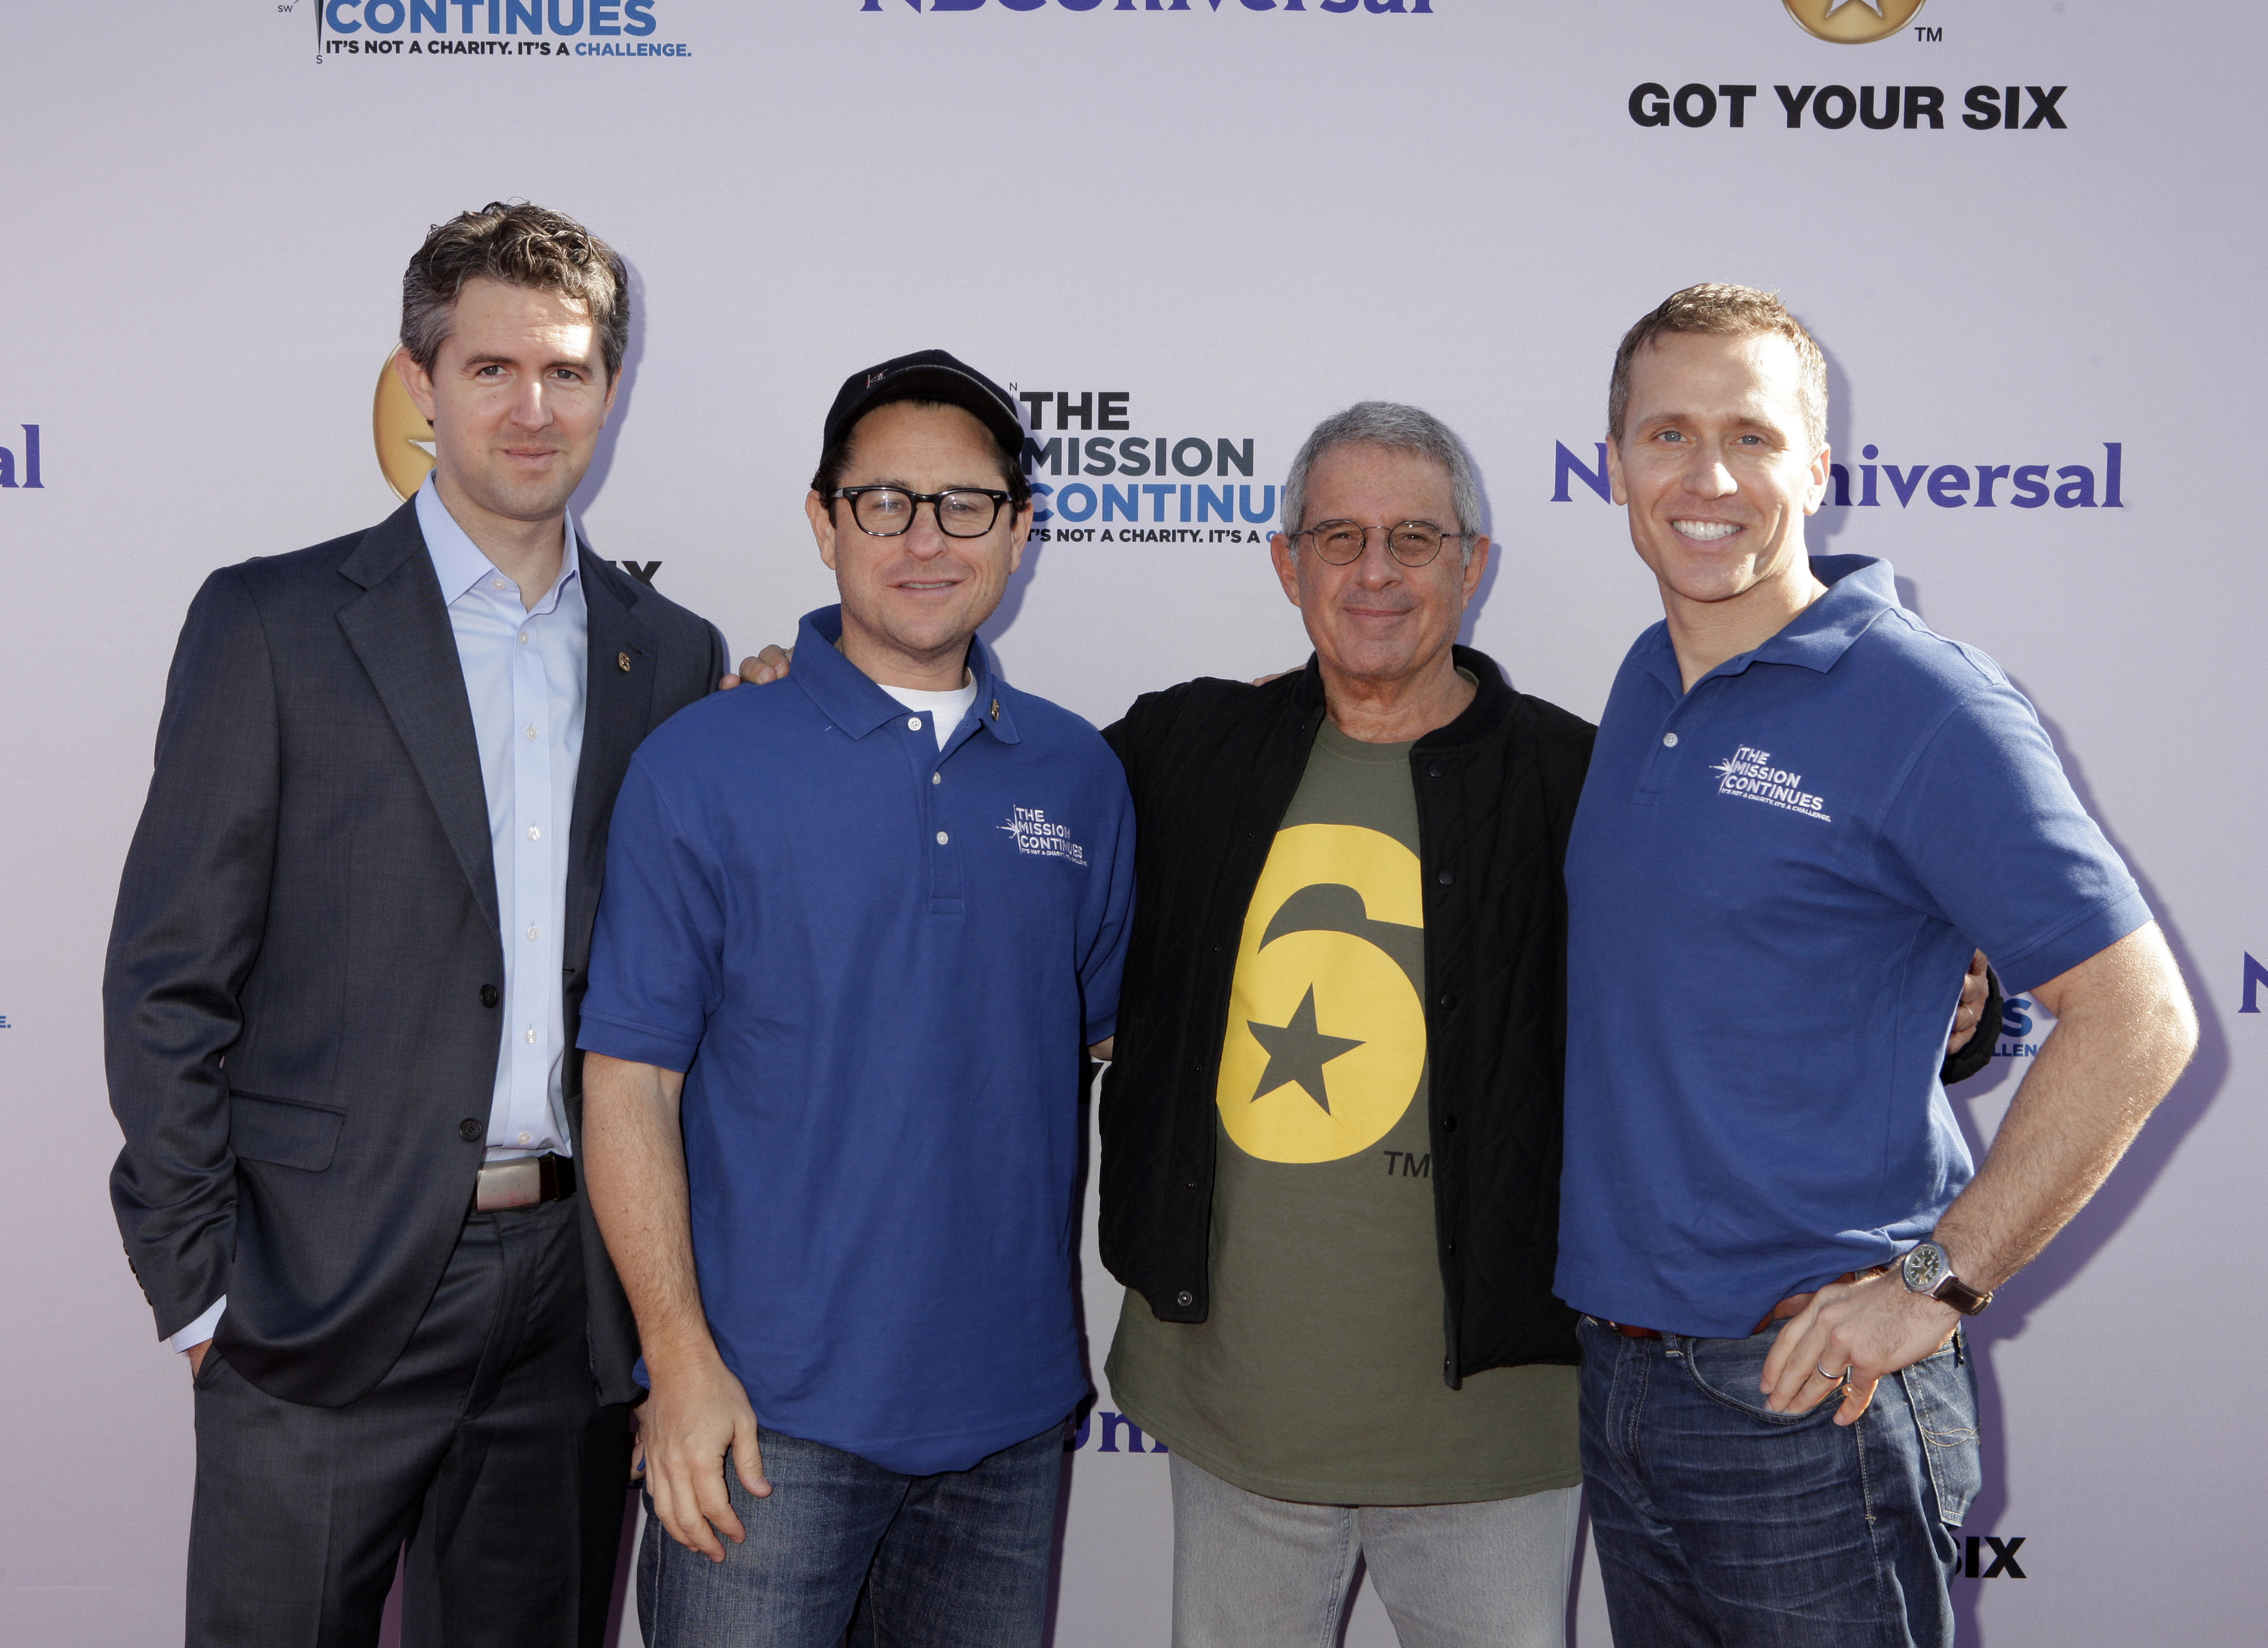 Chris Marvin, J.J. Abrams, Ron Meyer, Eric Greitens, NBCUniversal Events, The Mission Continues, Got Your 6, Veterans, Service Project, Veterans Day, Veterans Day Weekend, Childhood Hunger